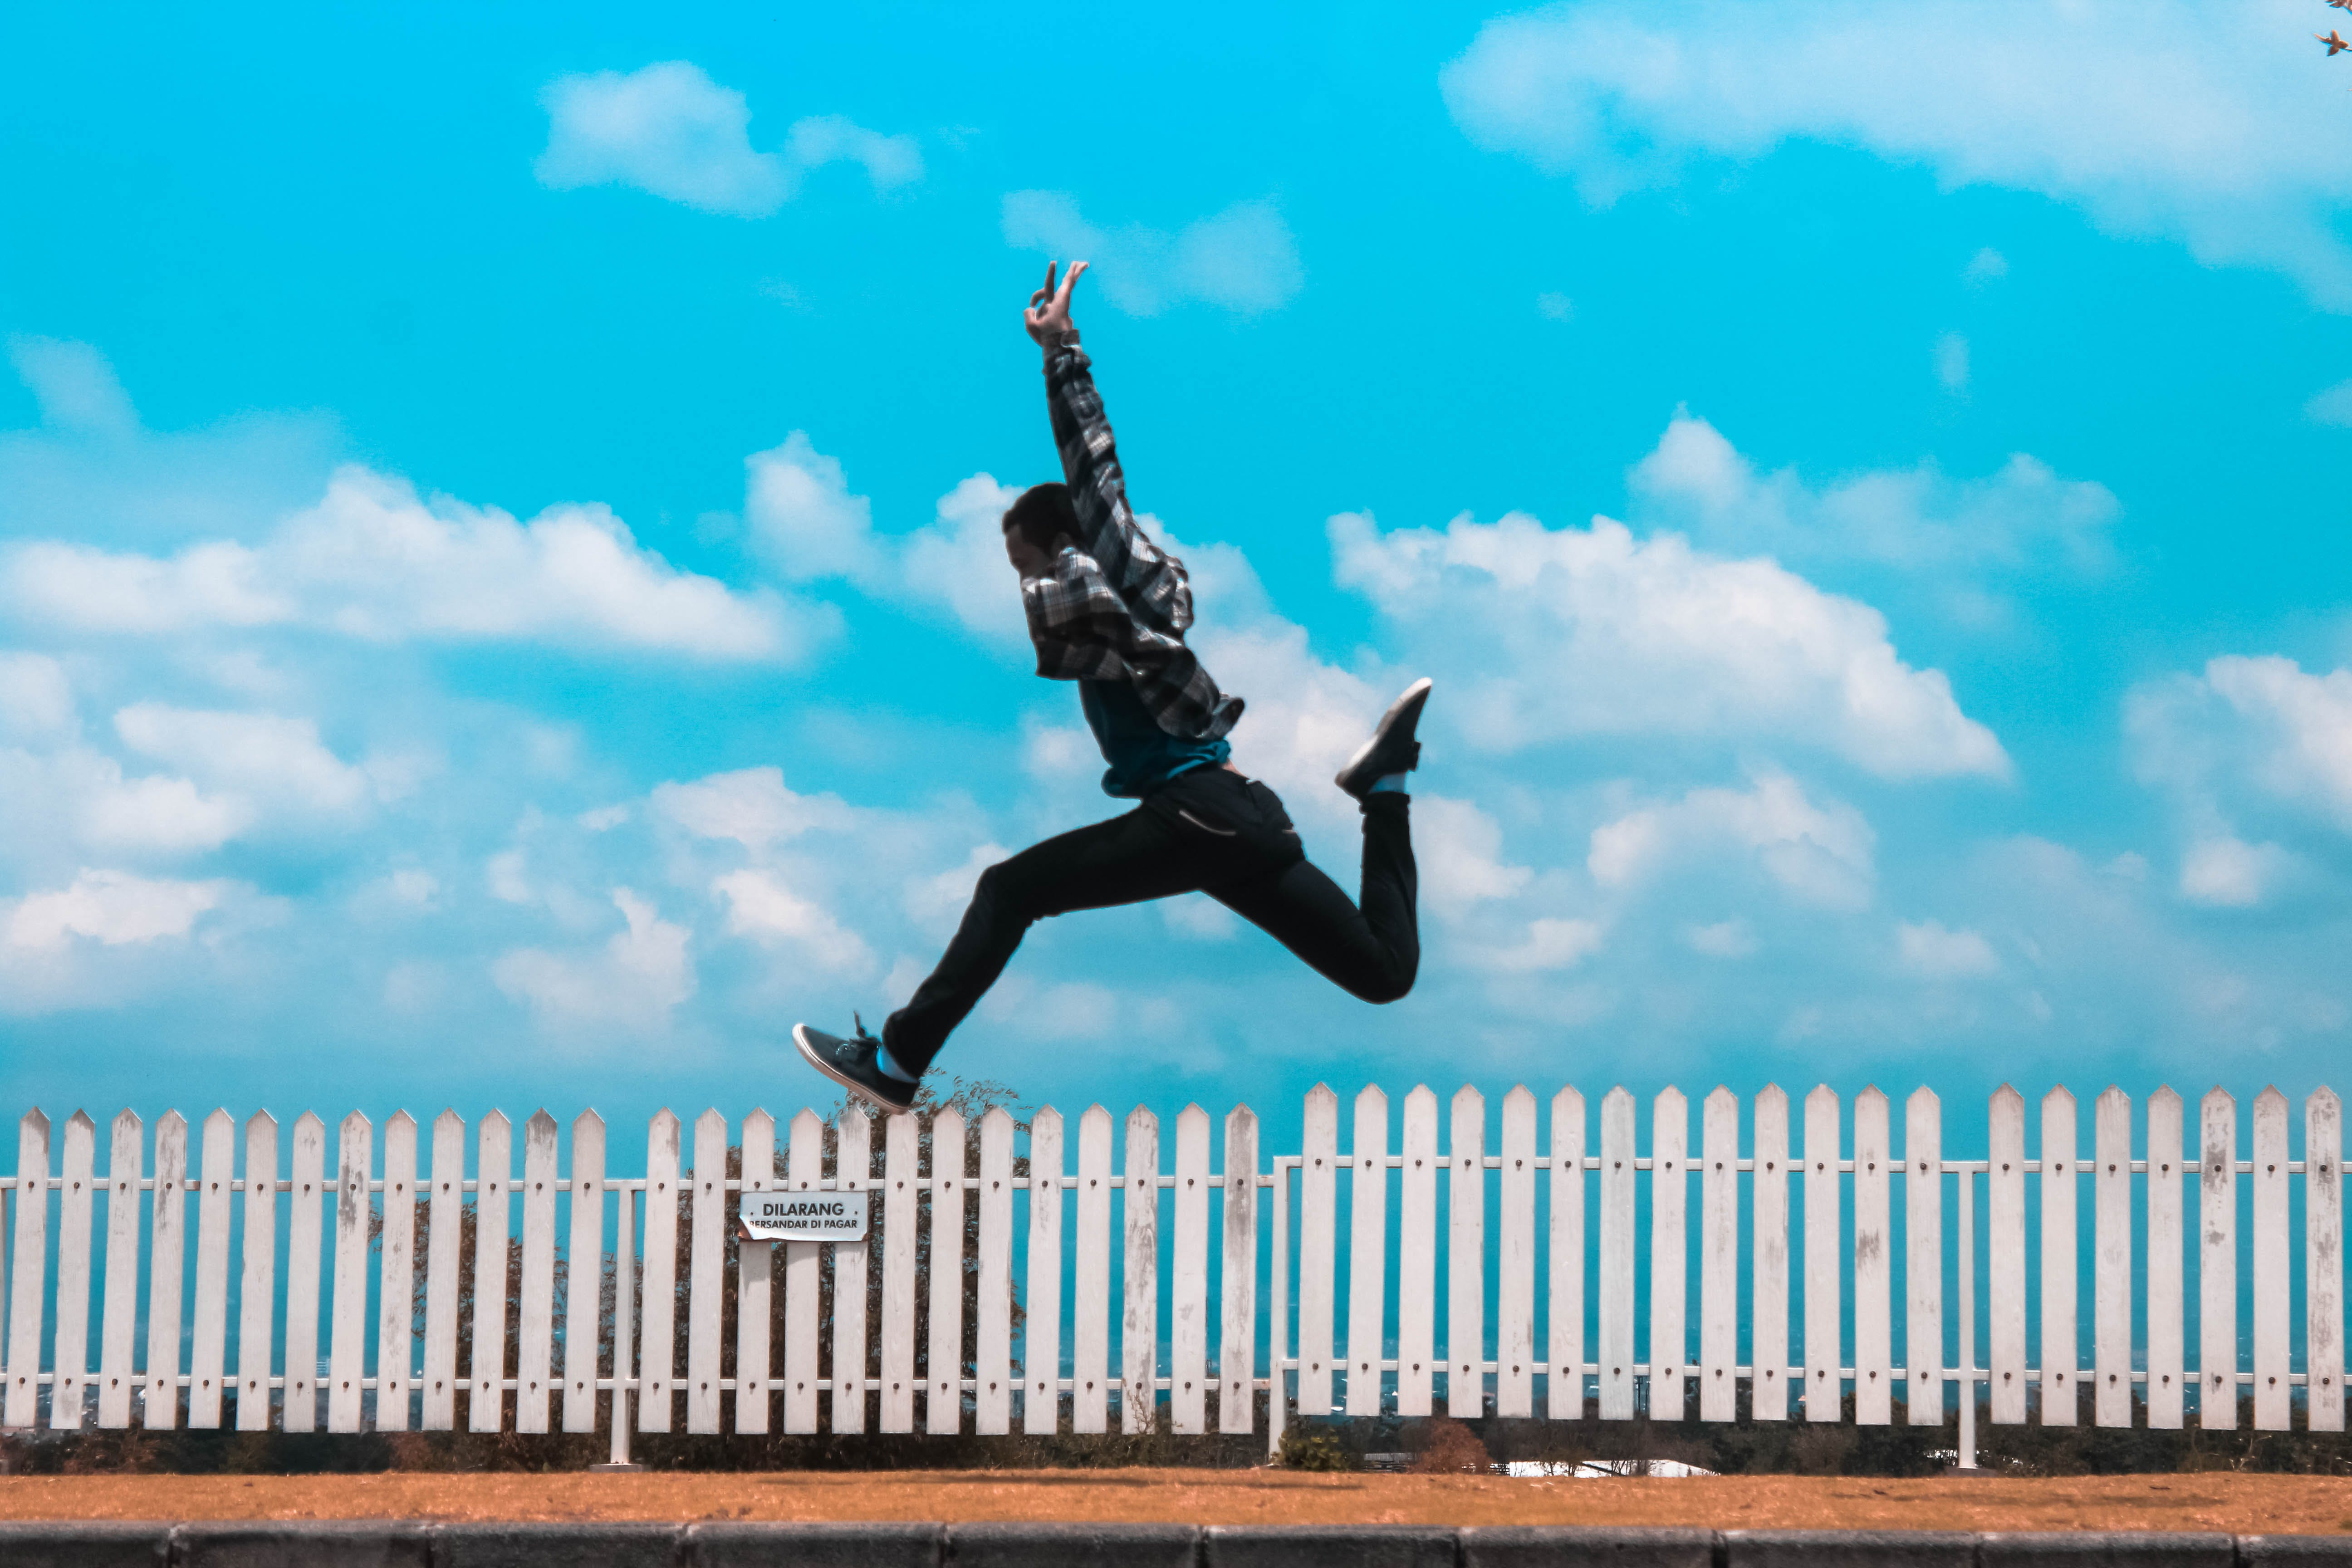 Man Jumping over White Fence